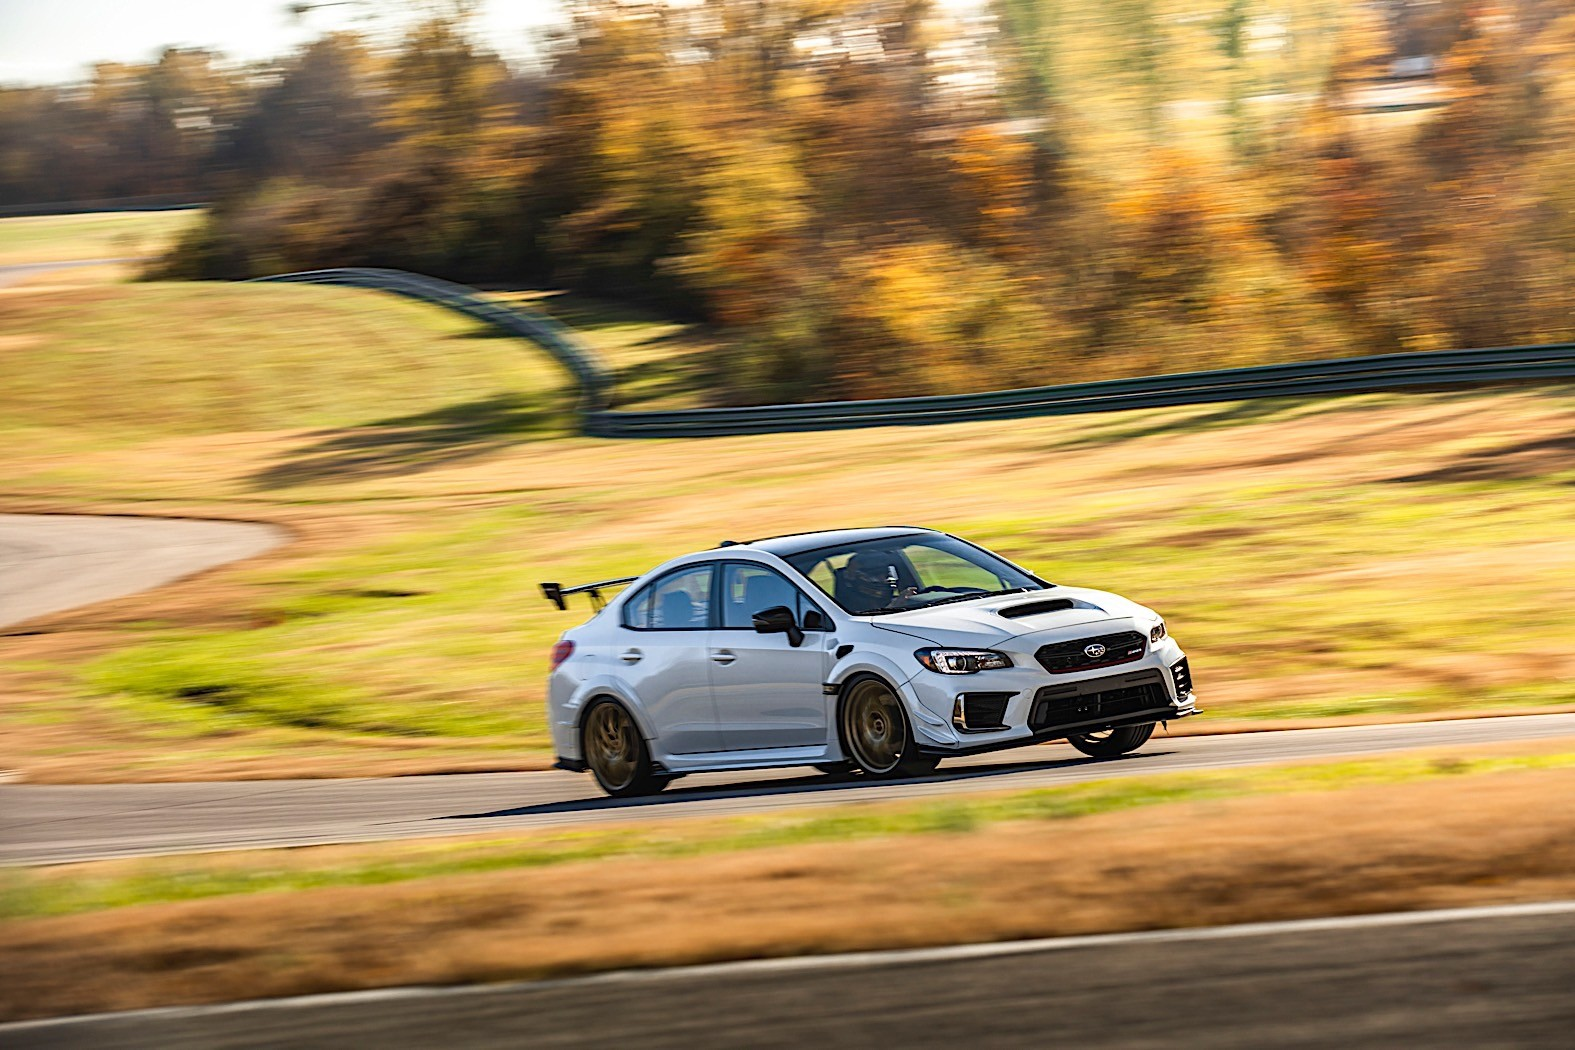 Wrx Sti Race >> Subaru STI S209 Is Exclusively for Americans - autoevolution